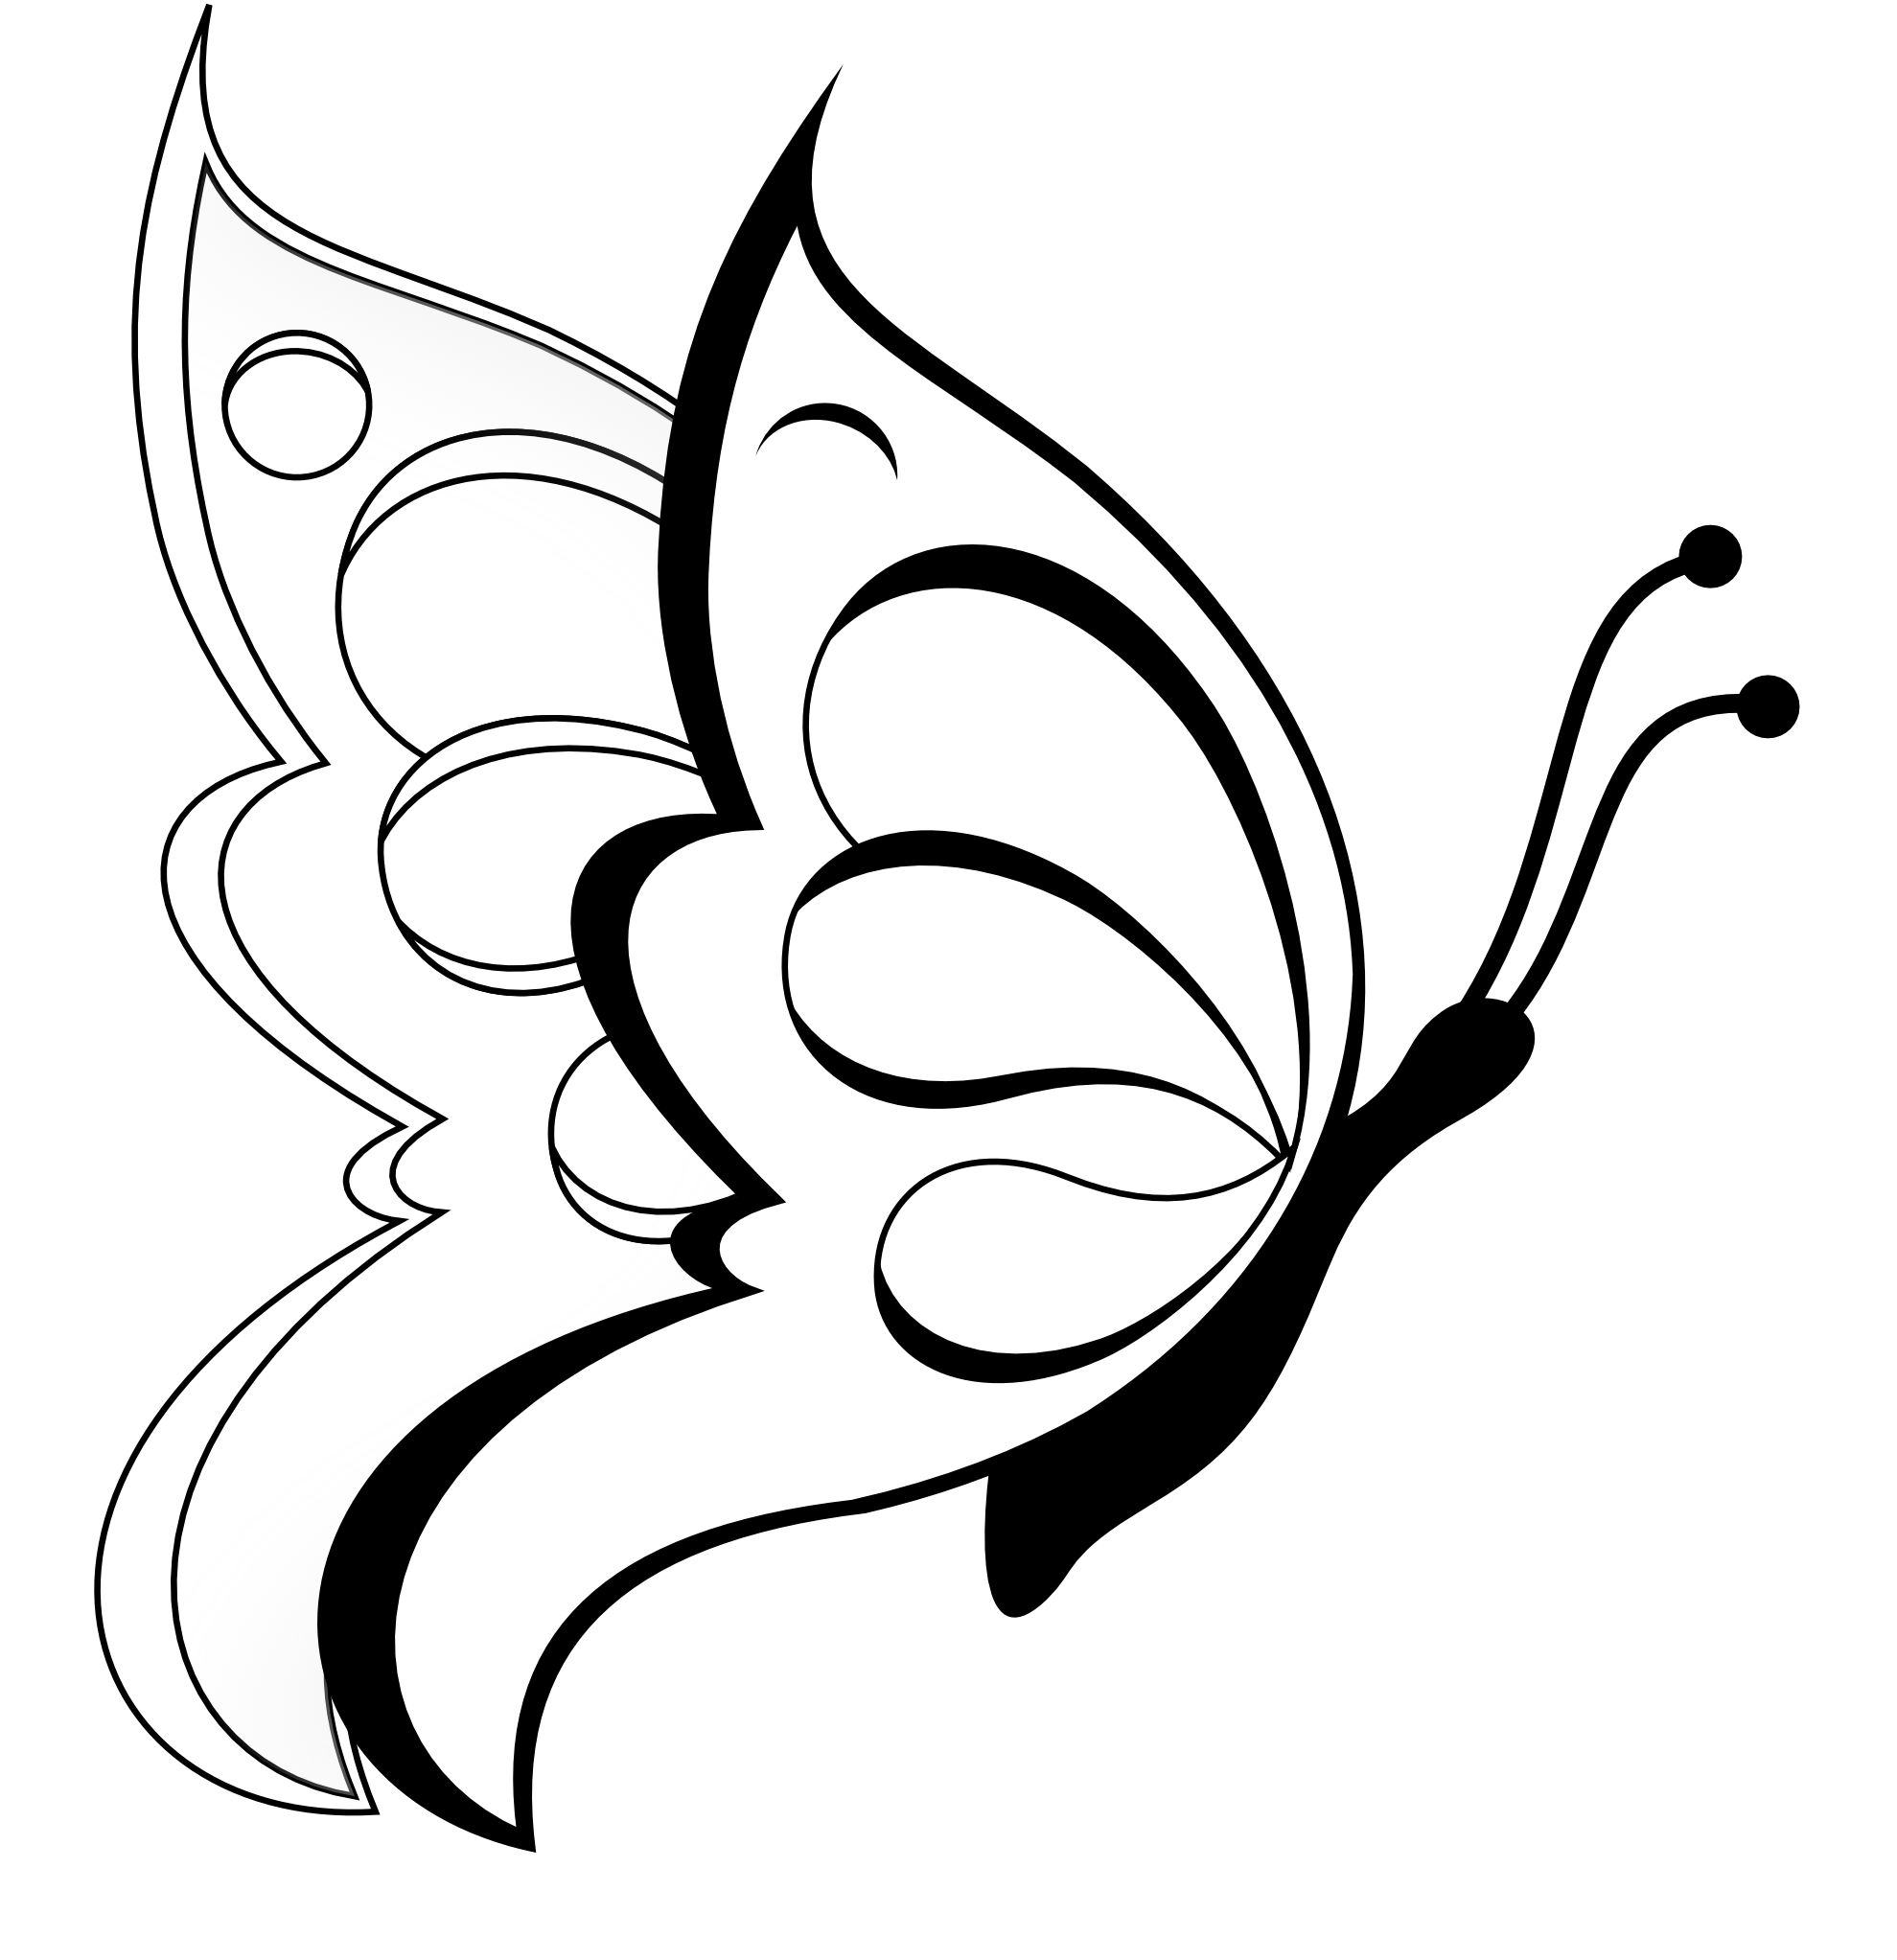 Simple Black And White Line Art : Butterfly clipart black and white panda free